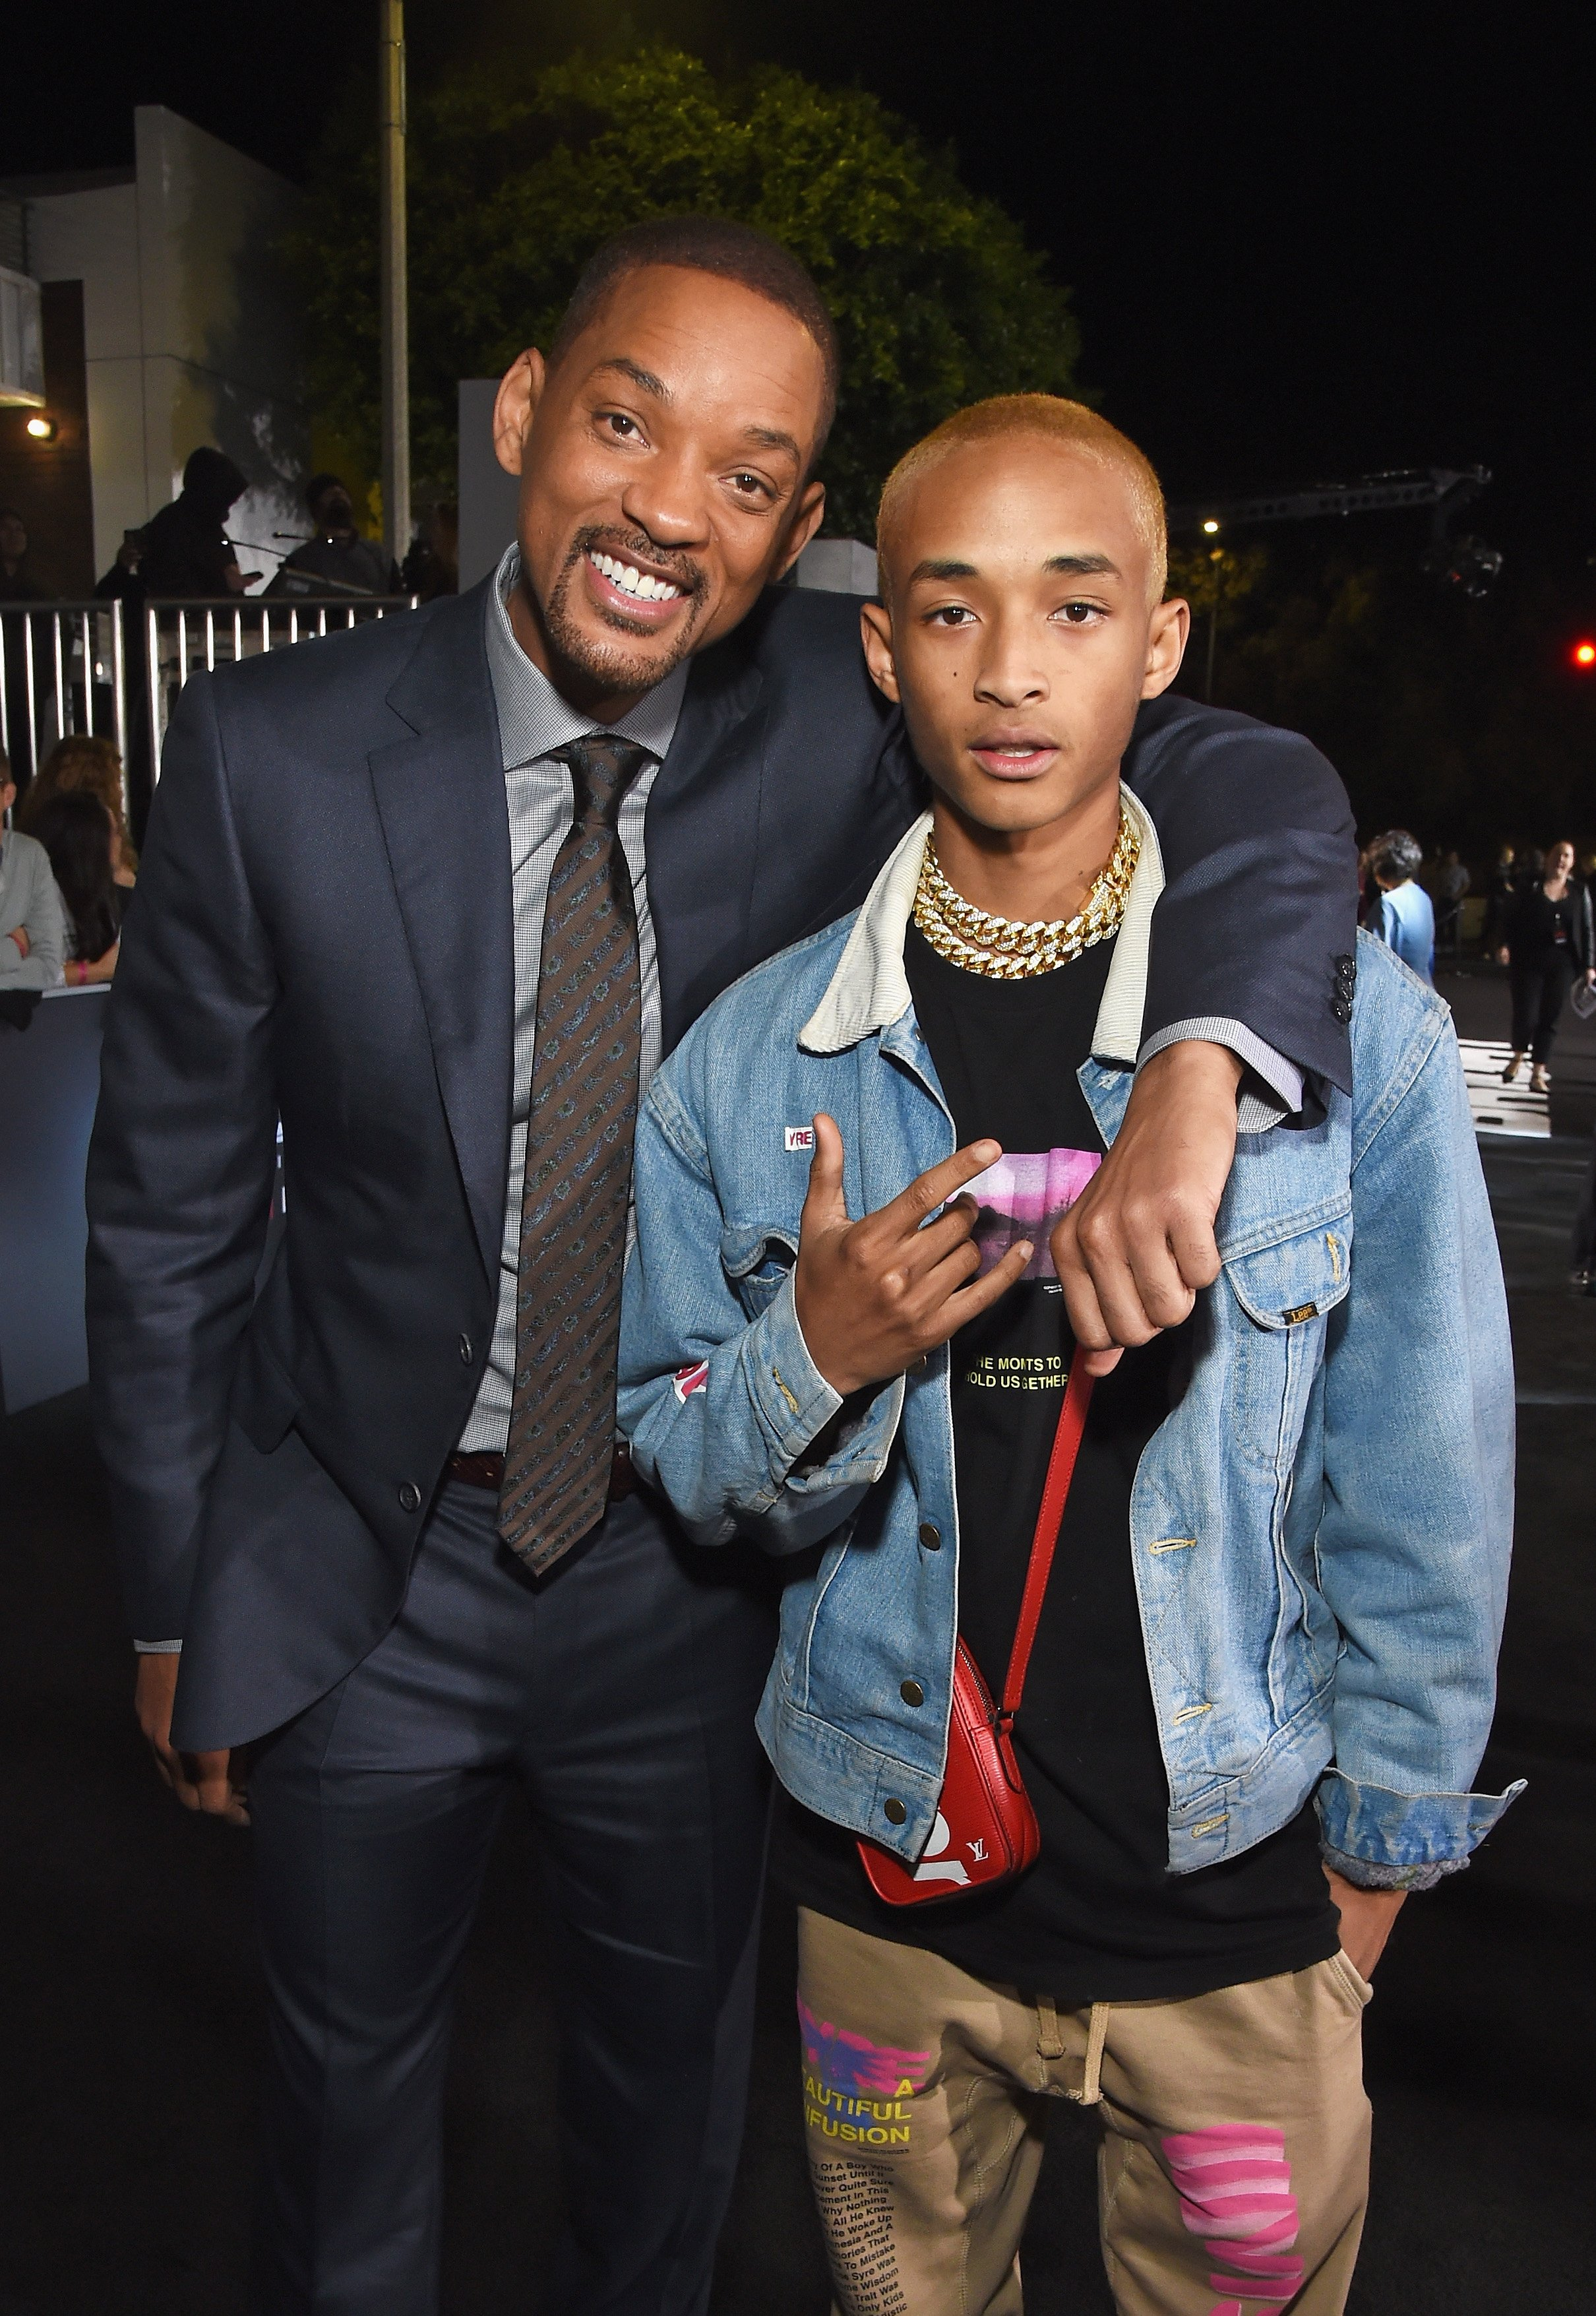 Image Credits: Getty Images / Michael Kovac | Will Smith (L) and Jaden Smith attend the LA Premiere of Netflix Films 'BRIGHT' on December 13, 2017 in Los Angeles, California.